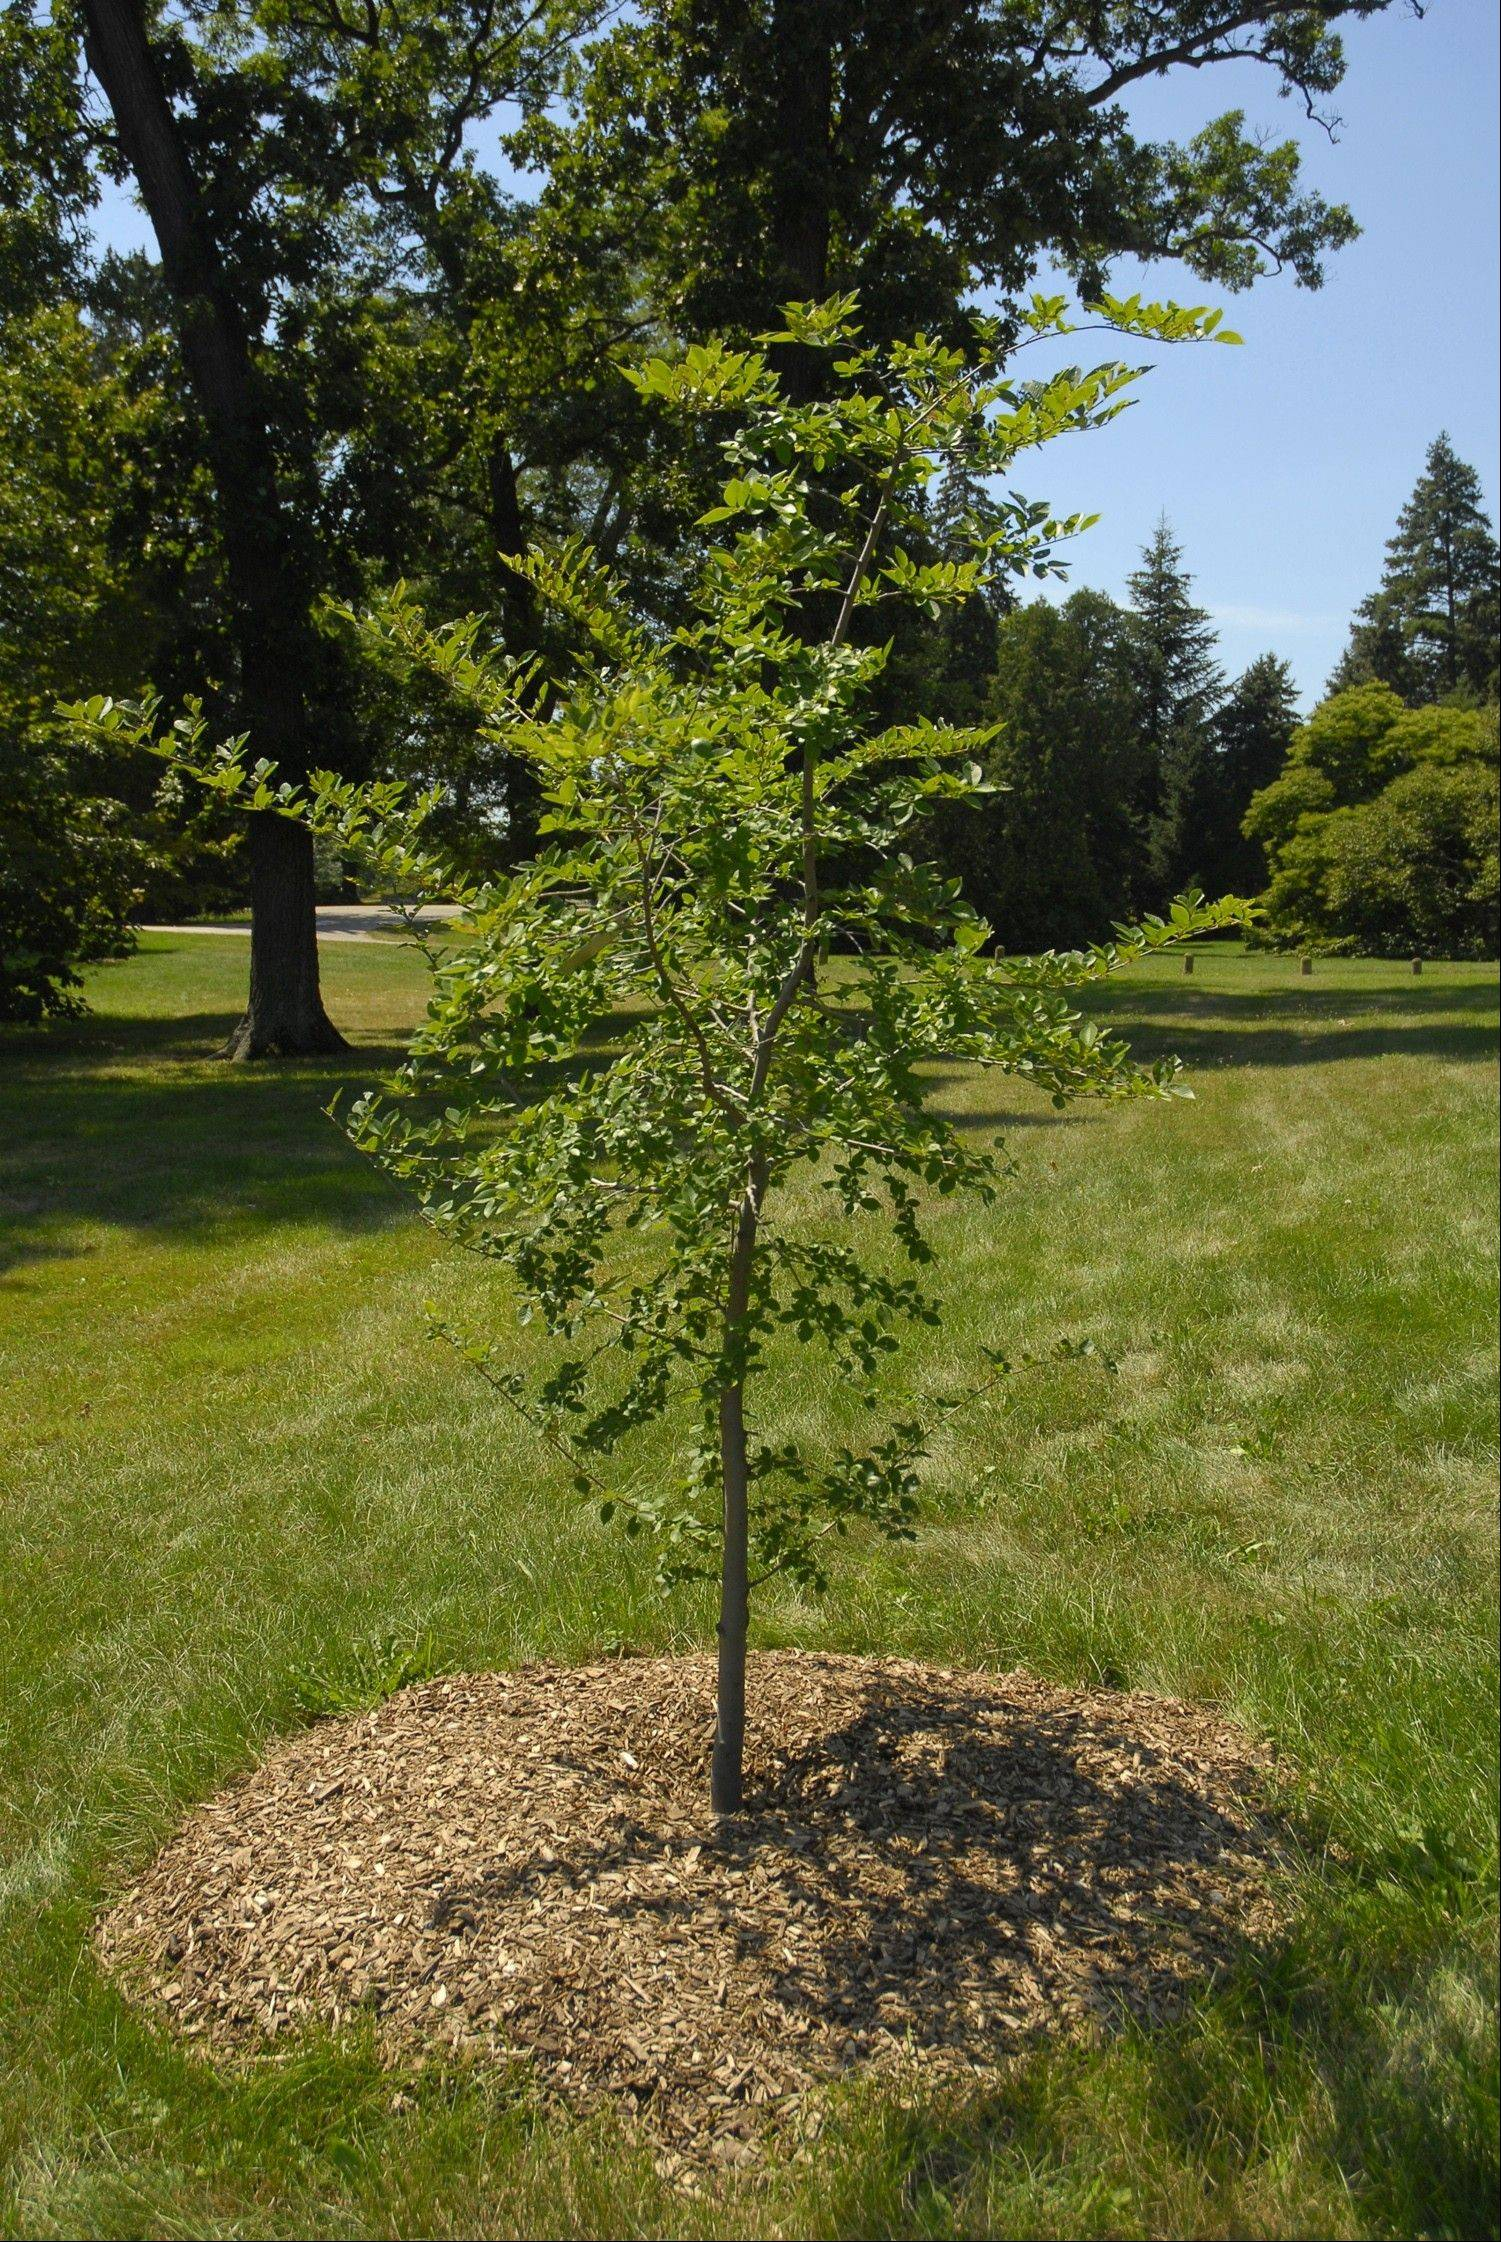 When planting trees, look for the trunk flare, where it starts to widen into the roots. Plant the tree so the flare is at or just above soil level.